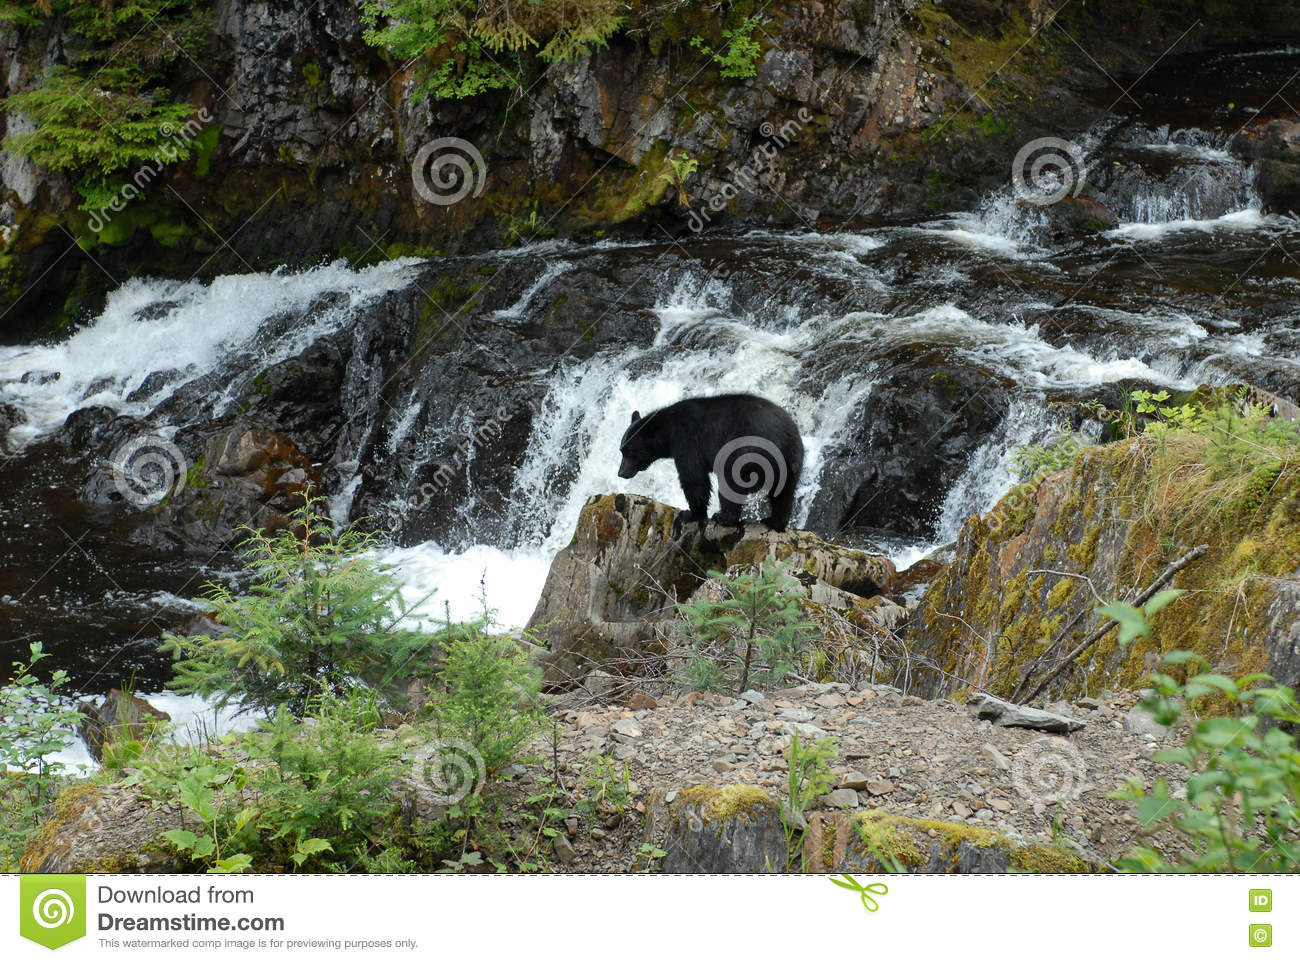 Download Black Bear Looking For Salmon At Prince Of Whales In Alaska Stock Photo - Image of looking, alaska: 79886466